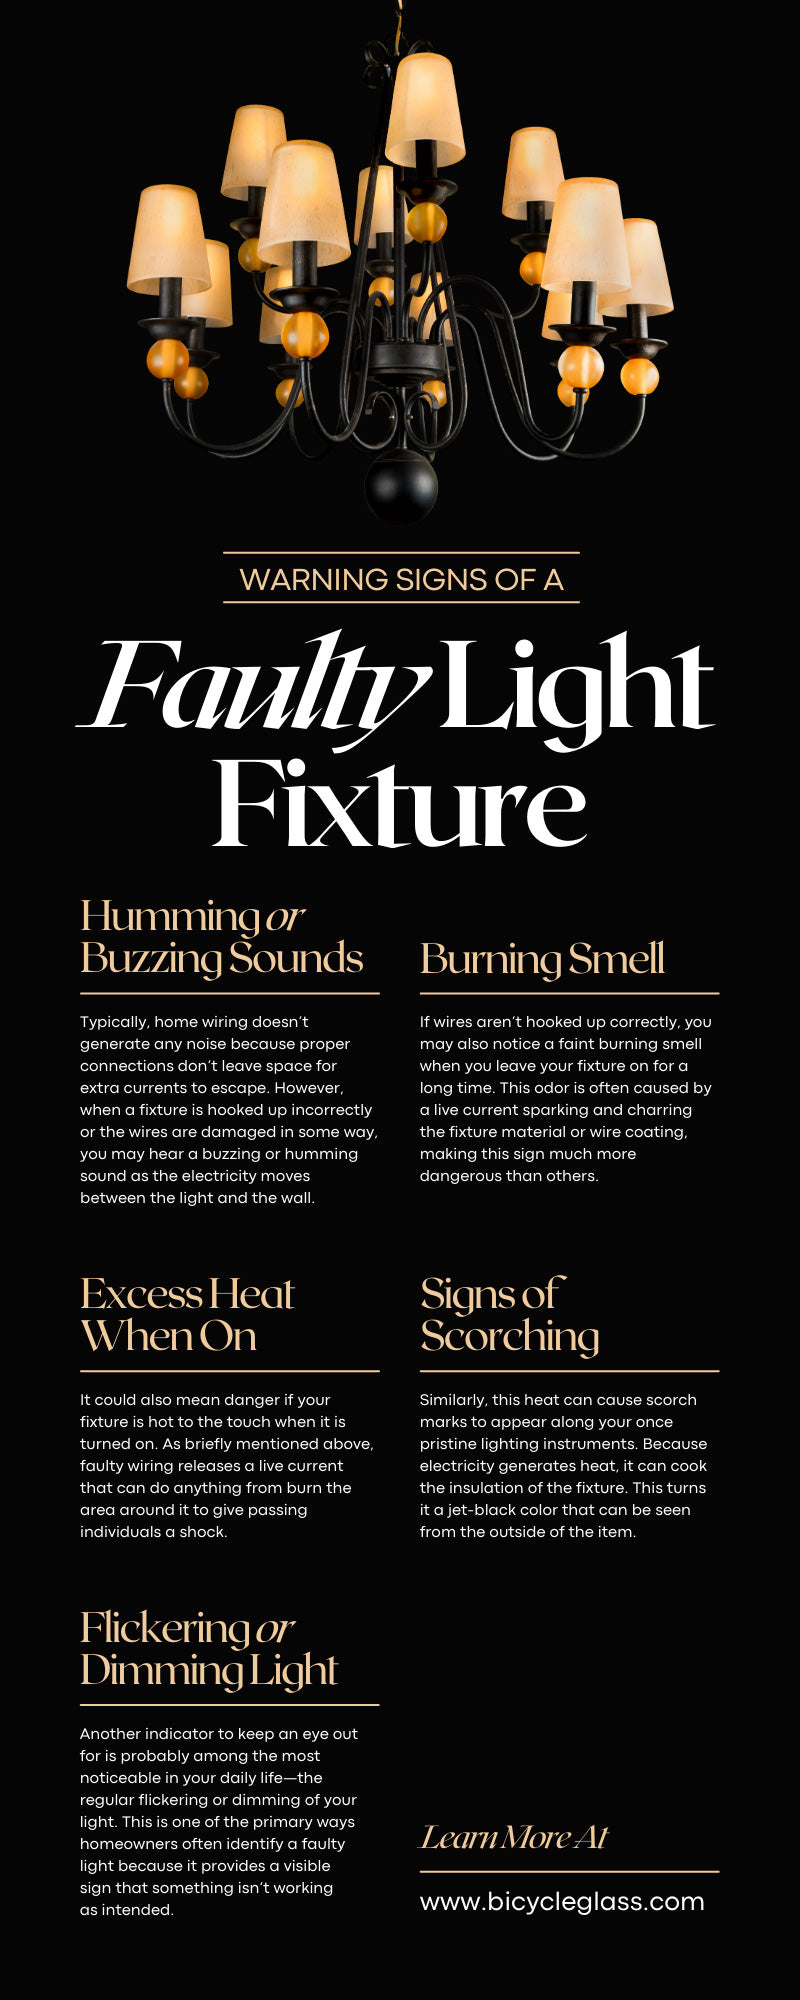 Warning Signs of a Faulty Light Fixture